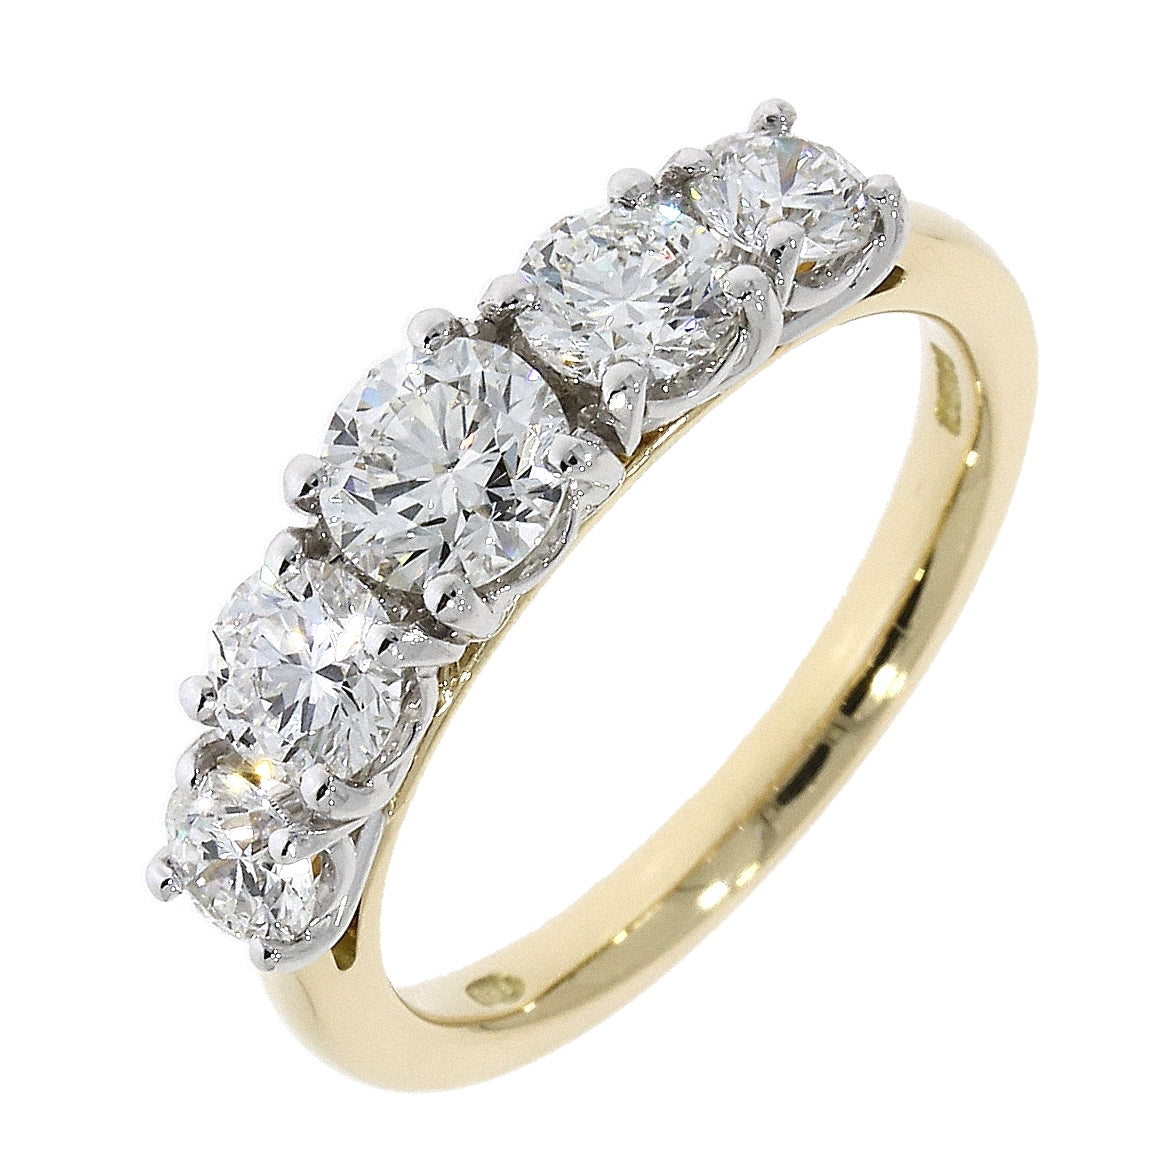 18ct Yellow and white Gold Graduated Five Stone Diamond Eternity Ring